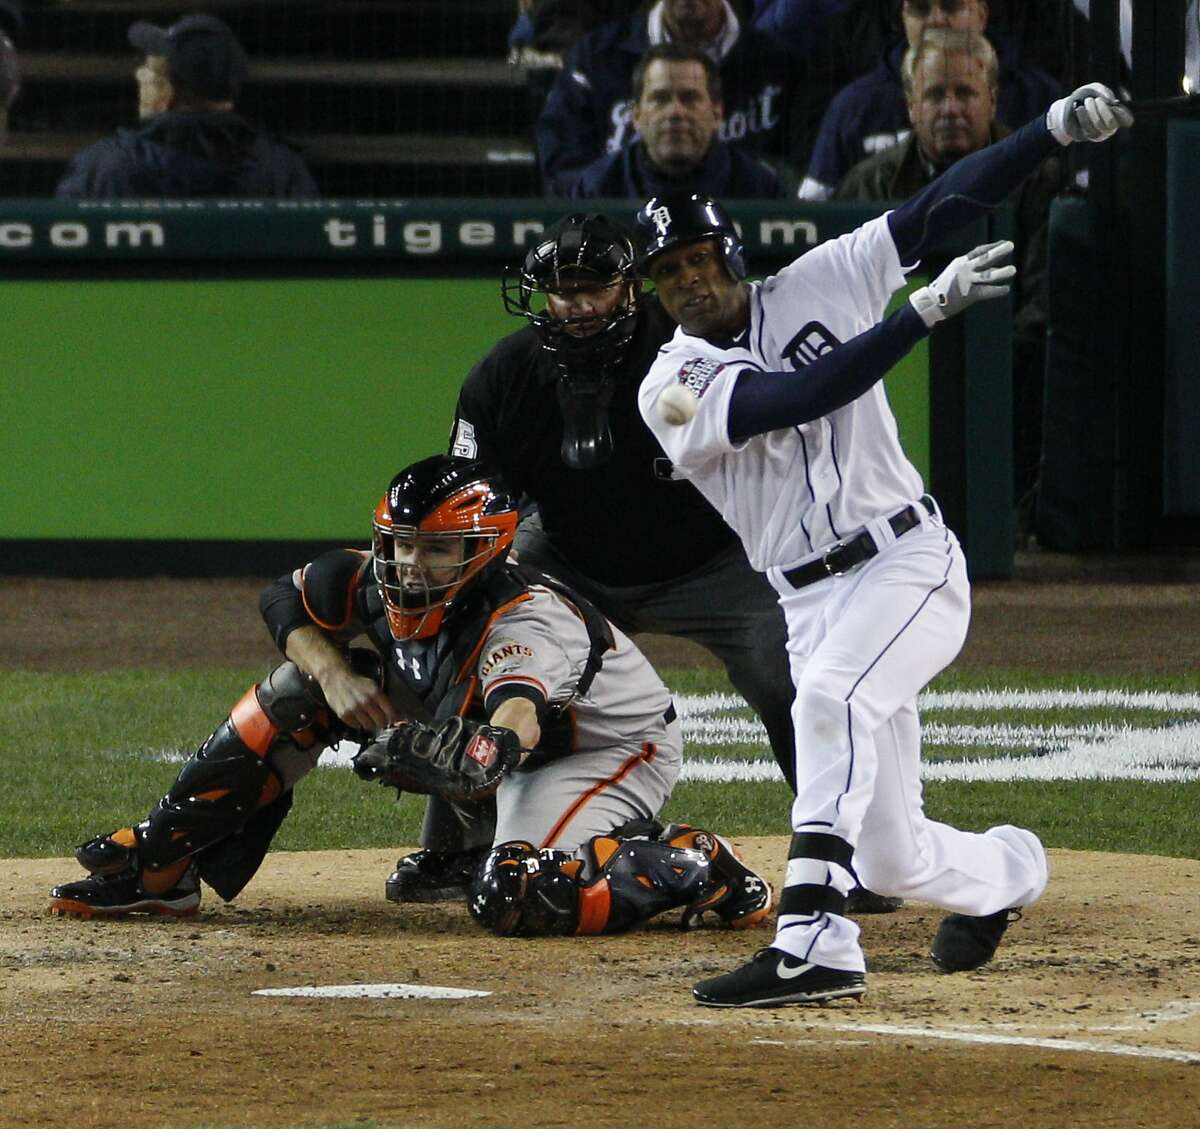 Tigers' center fielder Austin Jackson hits a single in the 3rd inning during the World Series game 3 at Comerica Park in Detroit, MI, on Saturday, Oct. 27, 2012.